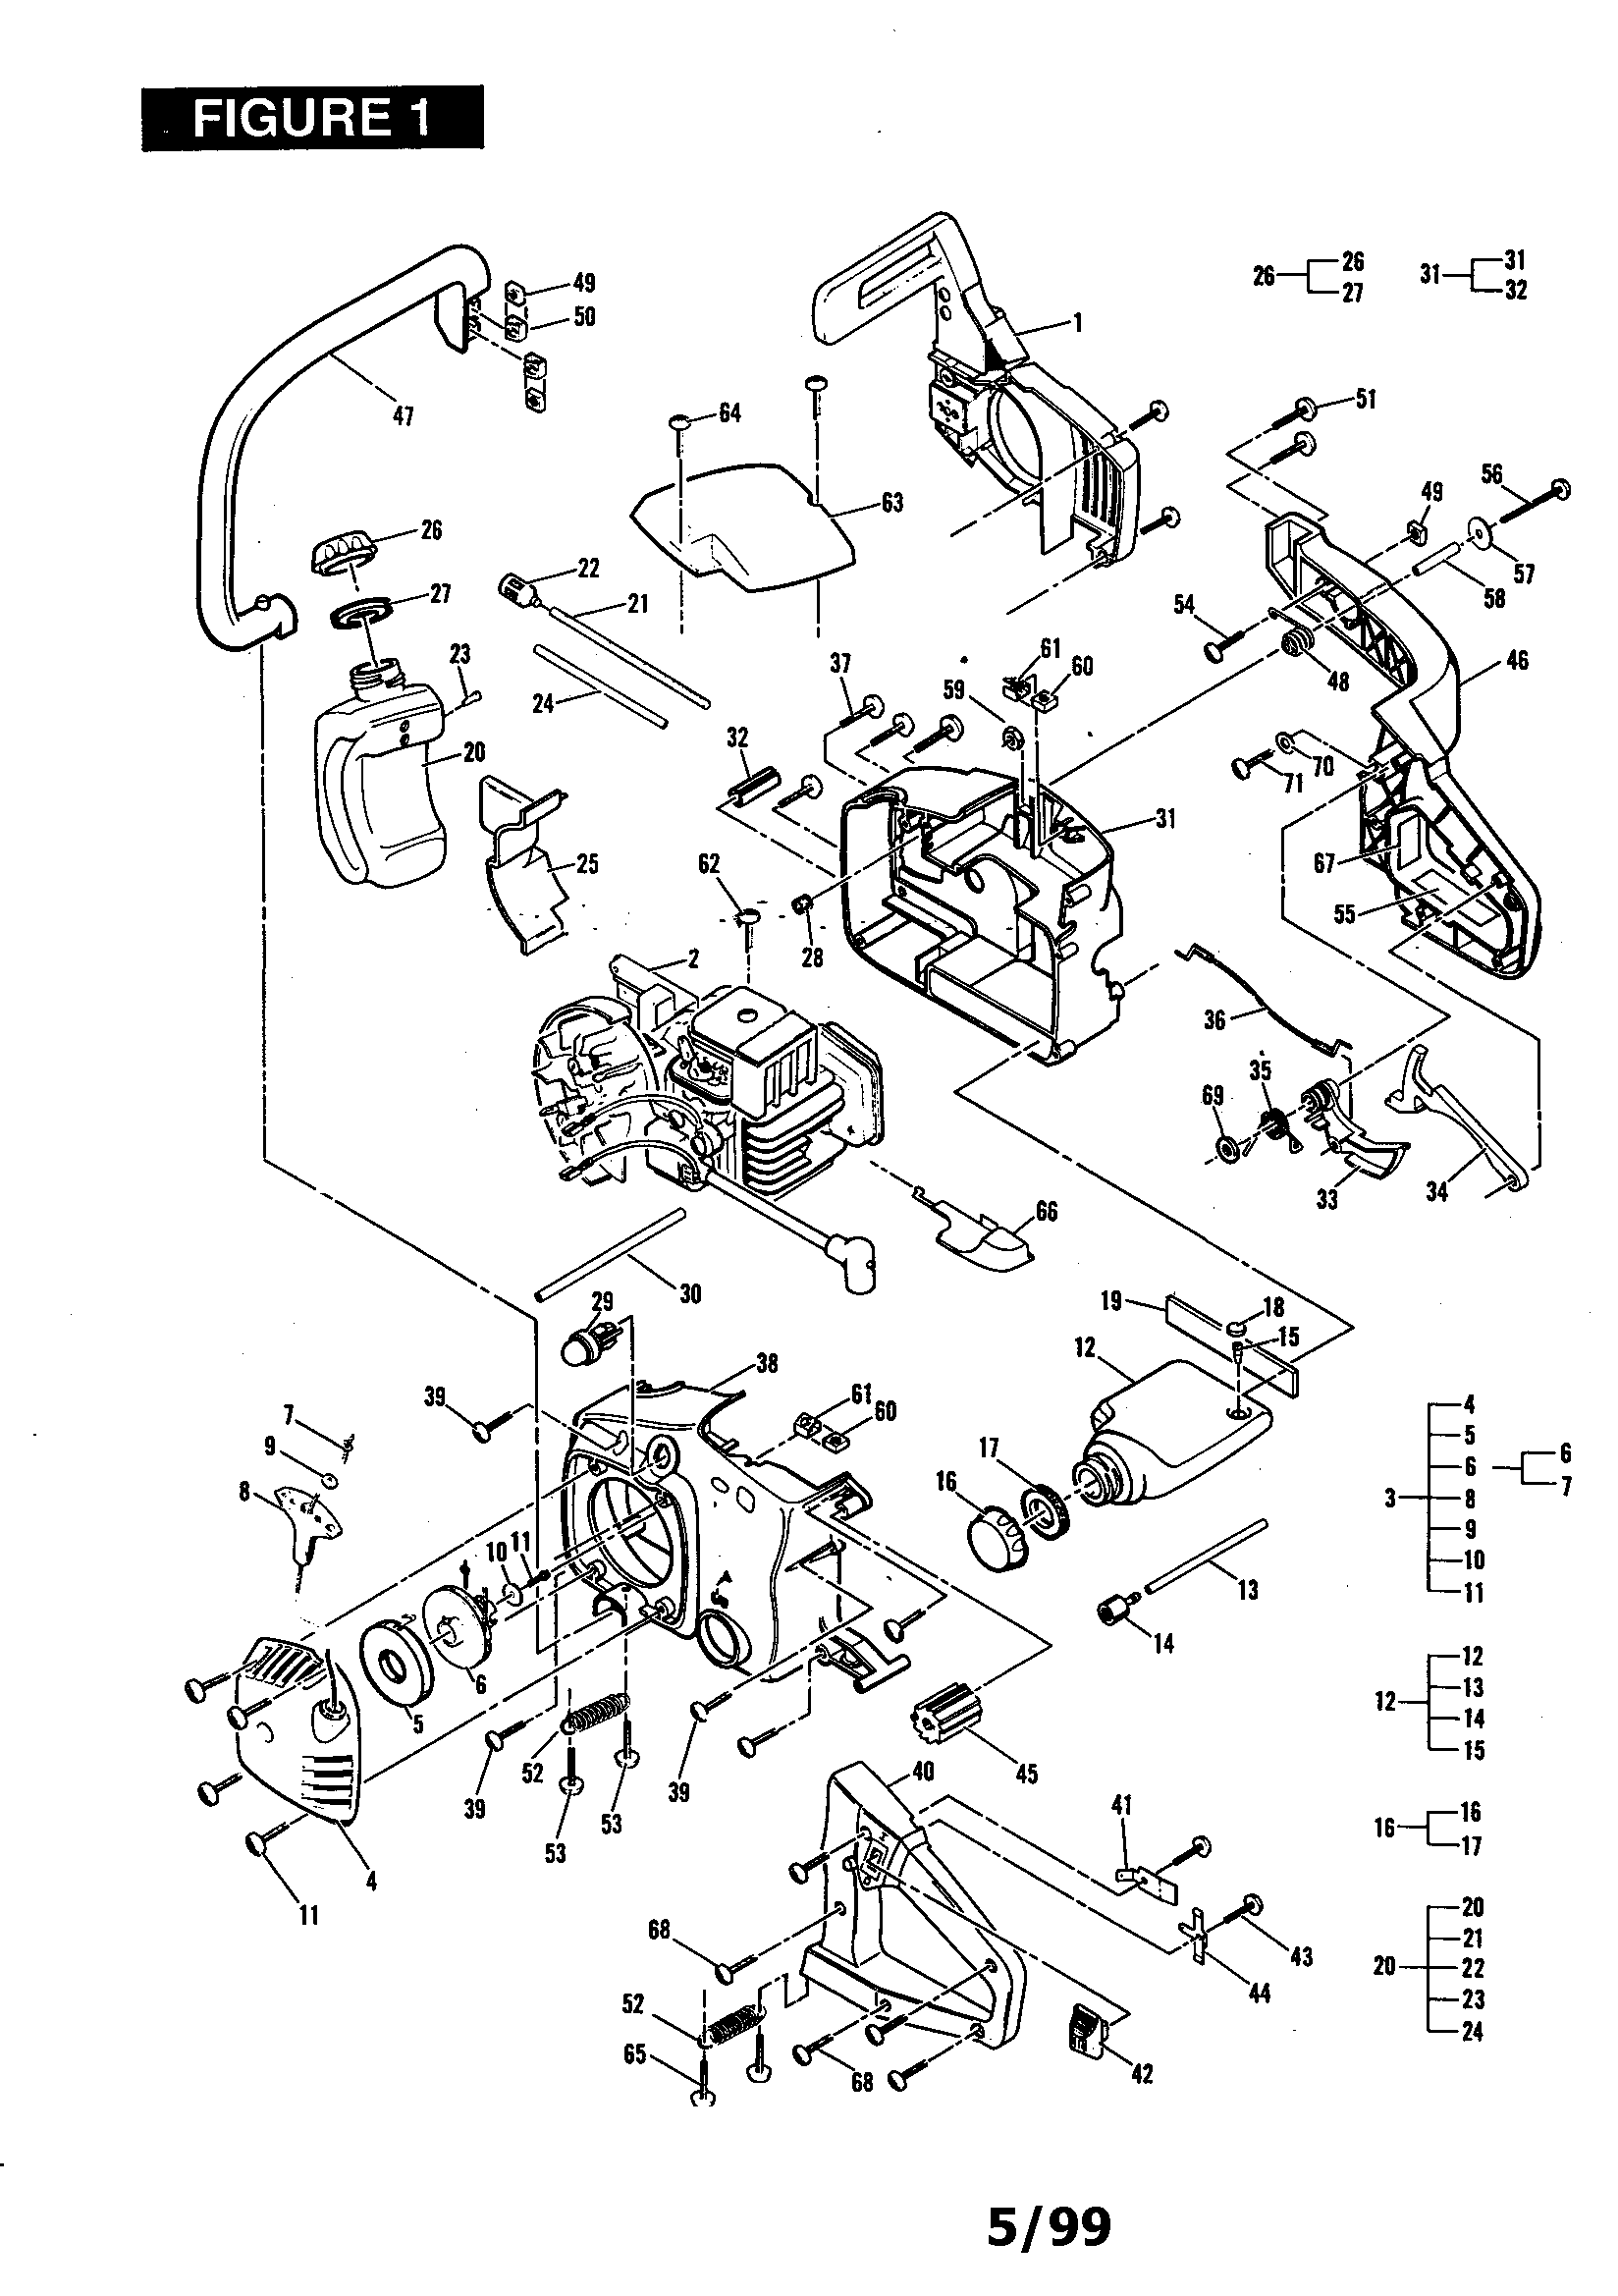 Rockwell Wiring Diagram Honda Motorcycle Repair Diagrams